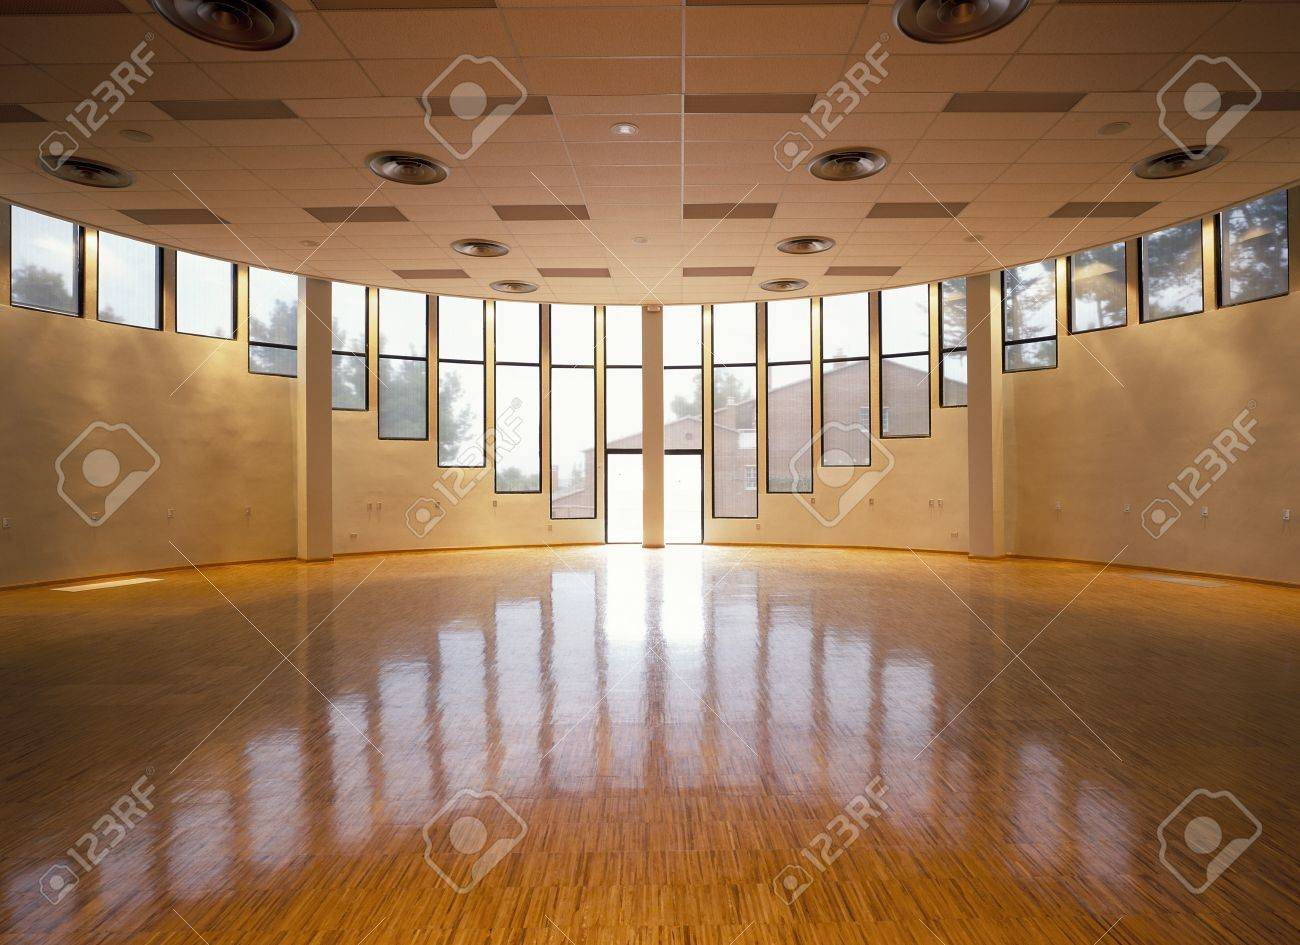 Wood Flooring: View Of A Spacious Hall LANG_EVOIMAGES